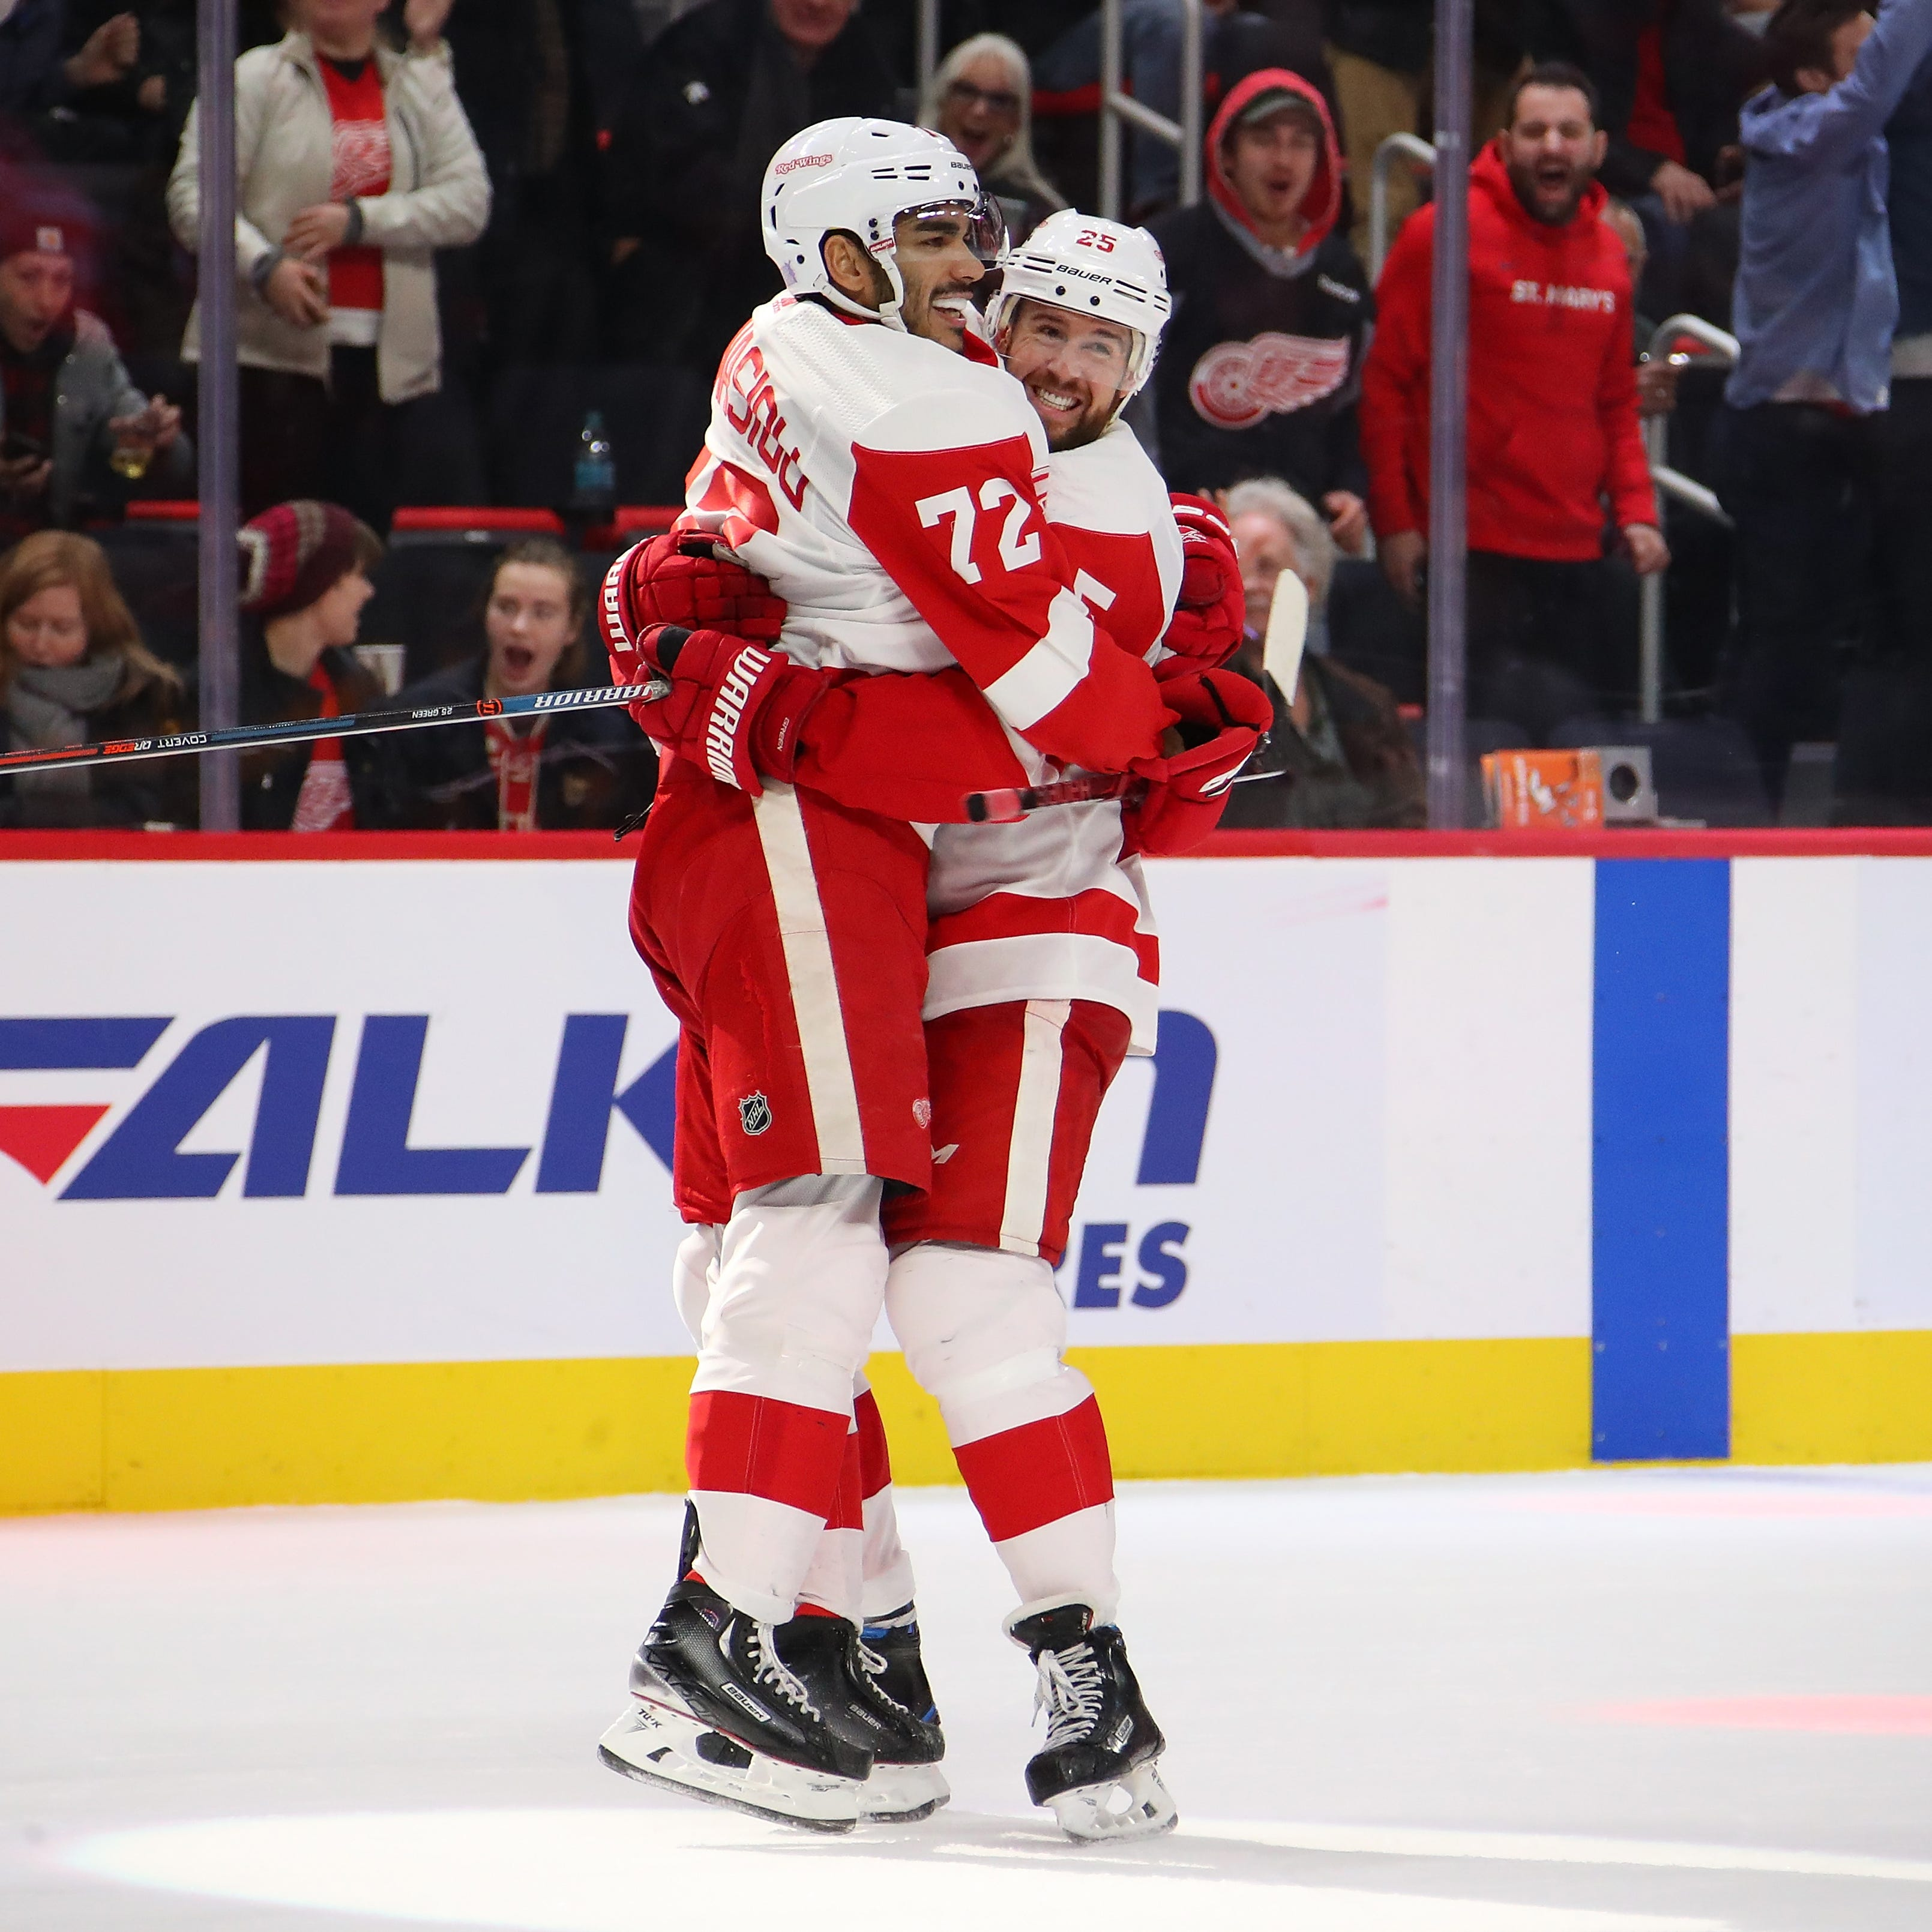 They did it again! Athanasiou gives Red Wings another overtime victory